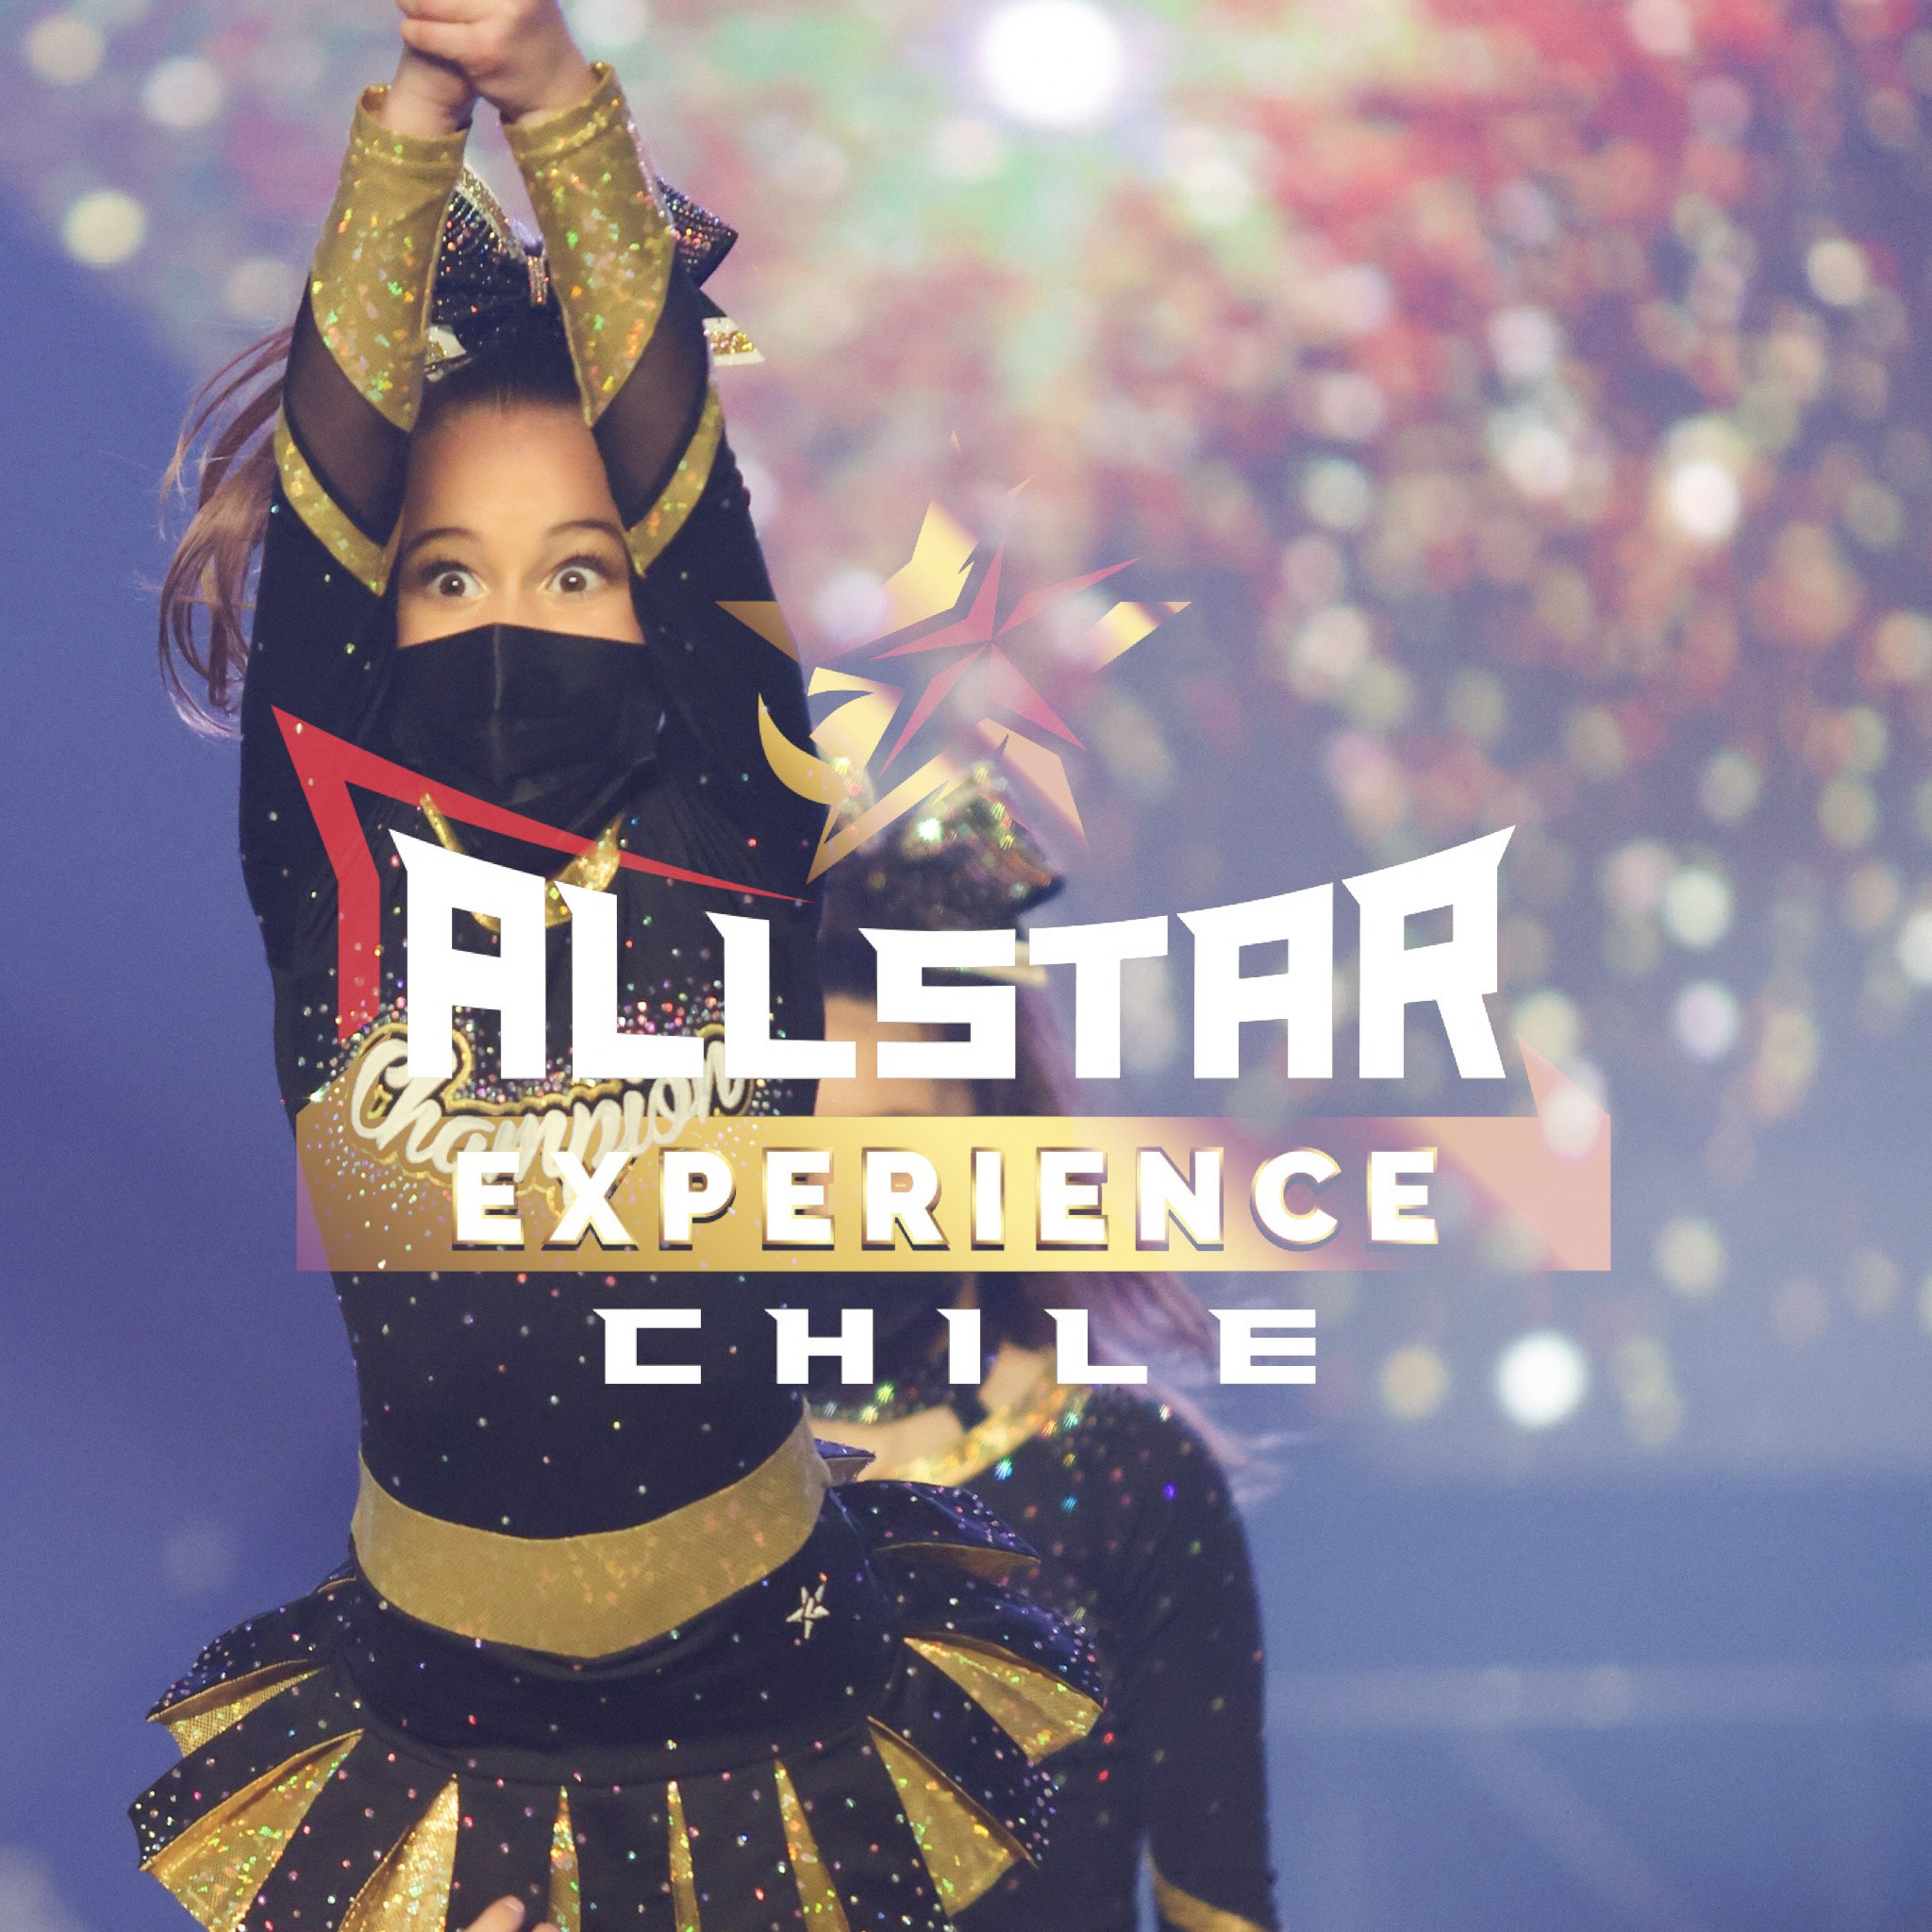 Allstar Experience Chile